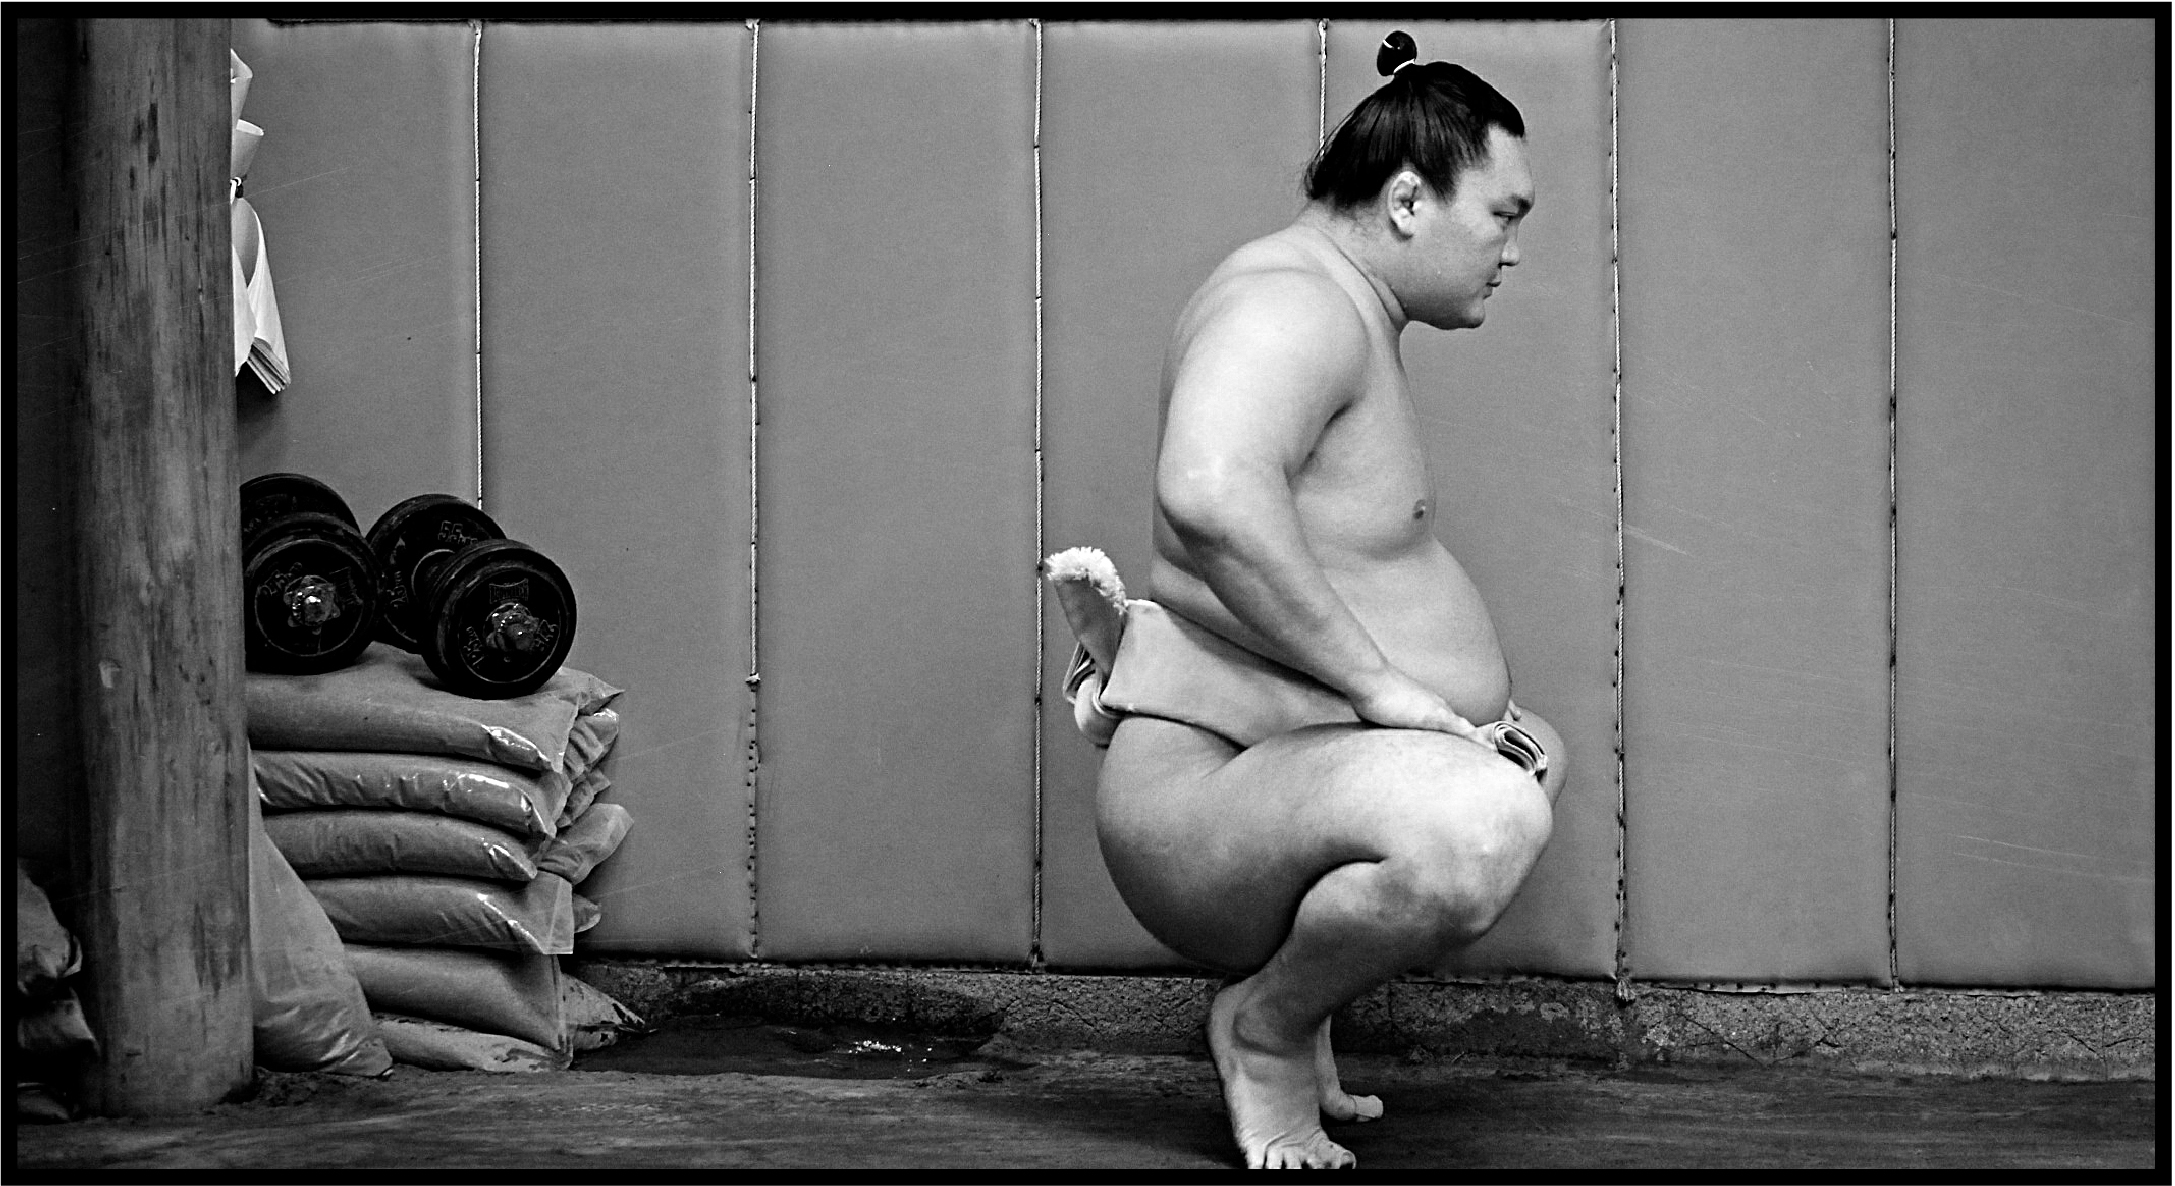 Hakuho trains in 2014.